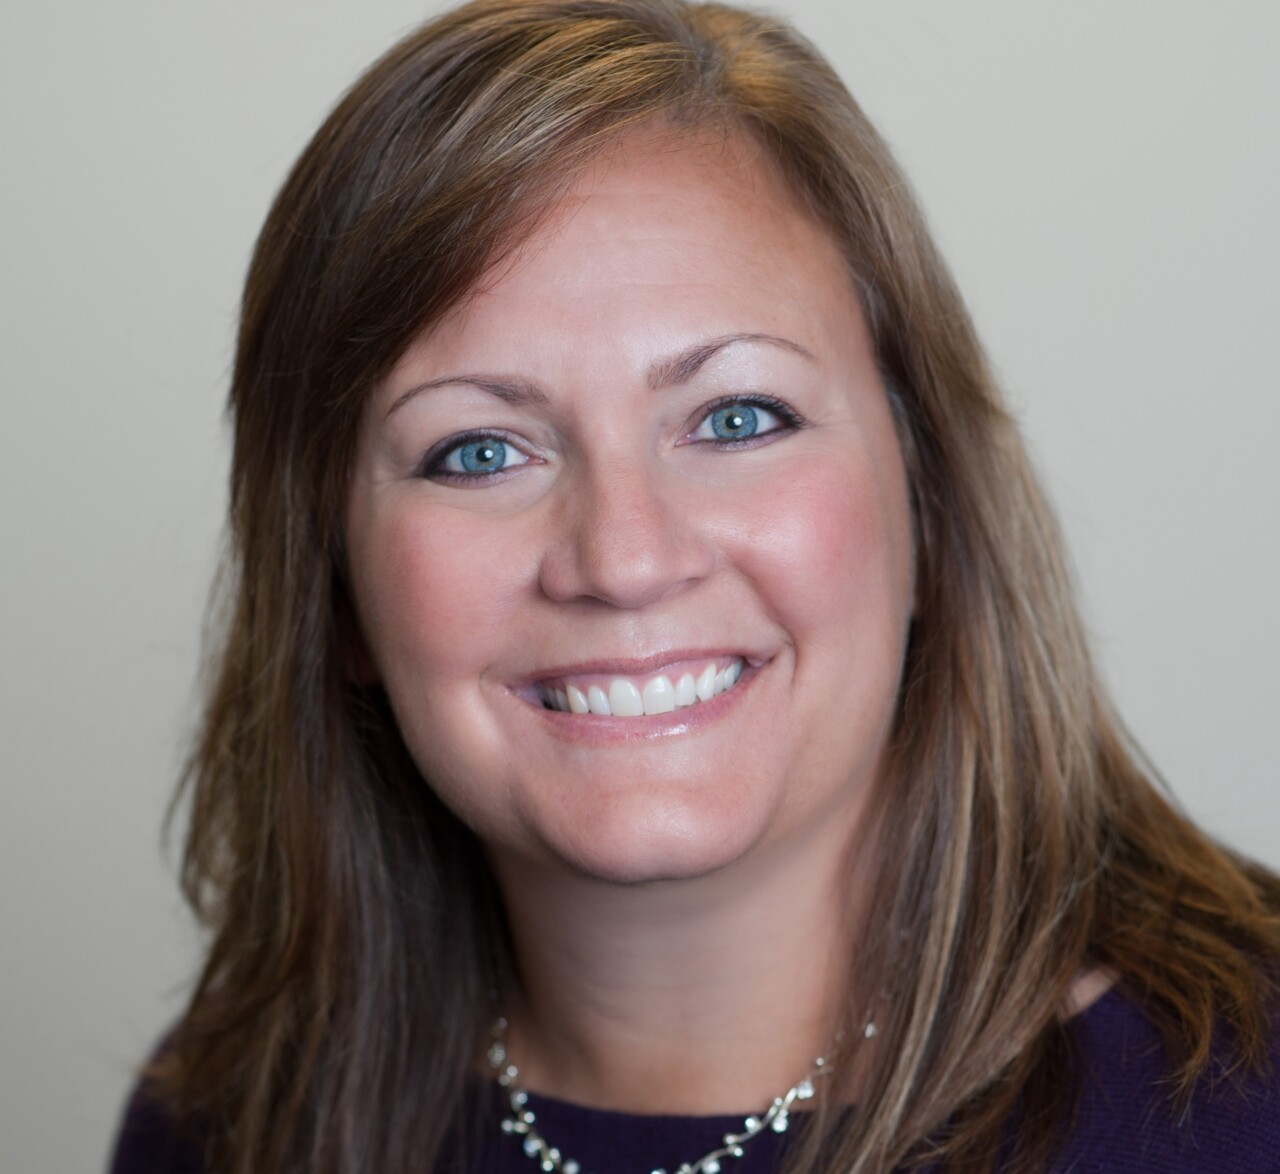 Jodi Harding is the chief operations officer at Lighthouse Youth and Family Services. In this photo, she is wearing a dark top and a necklace with white beads.